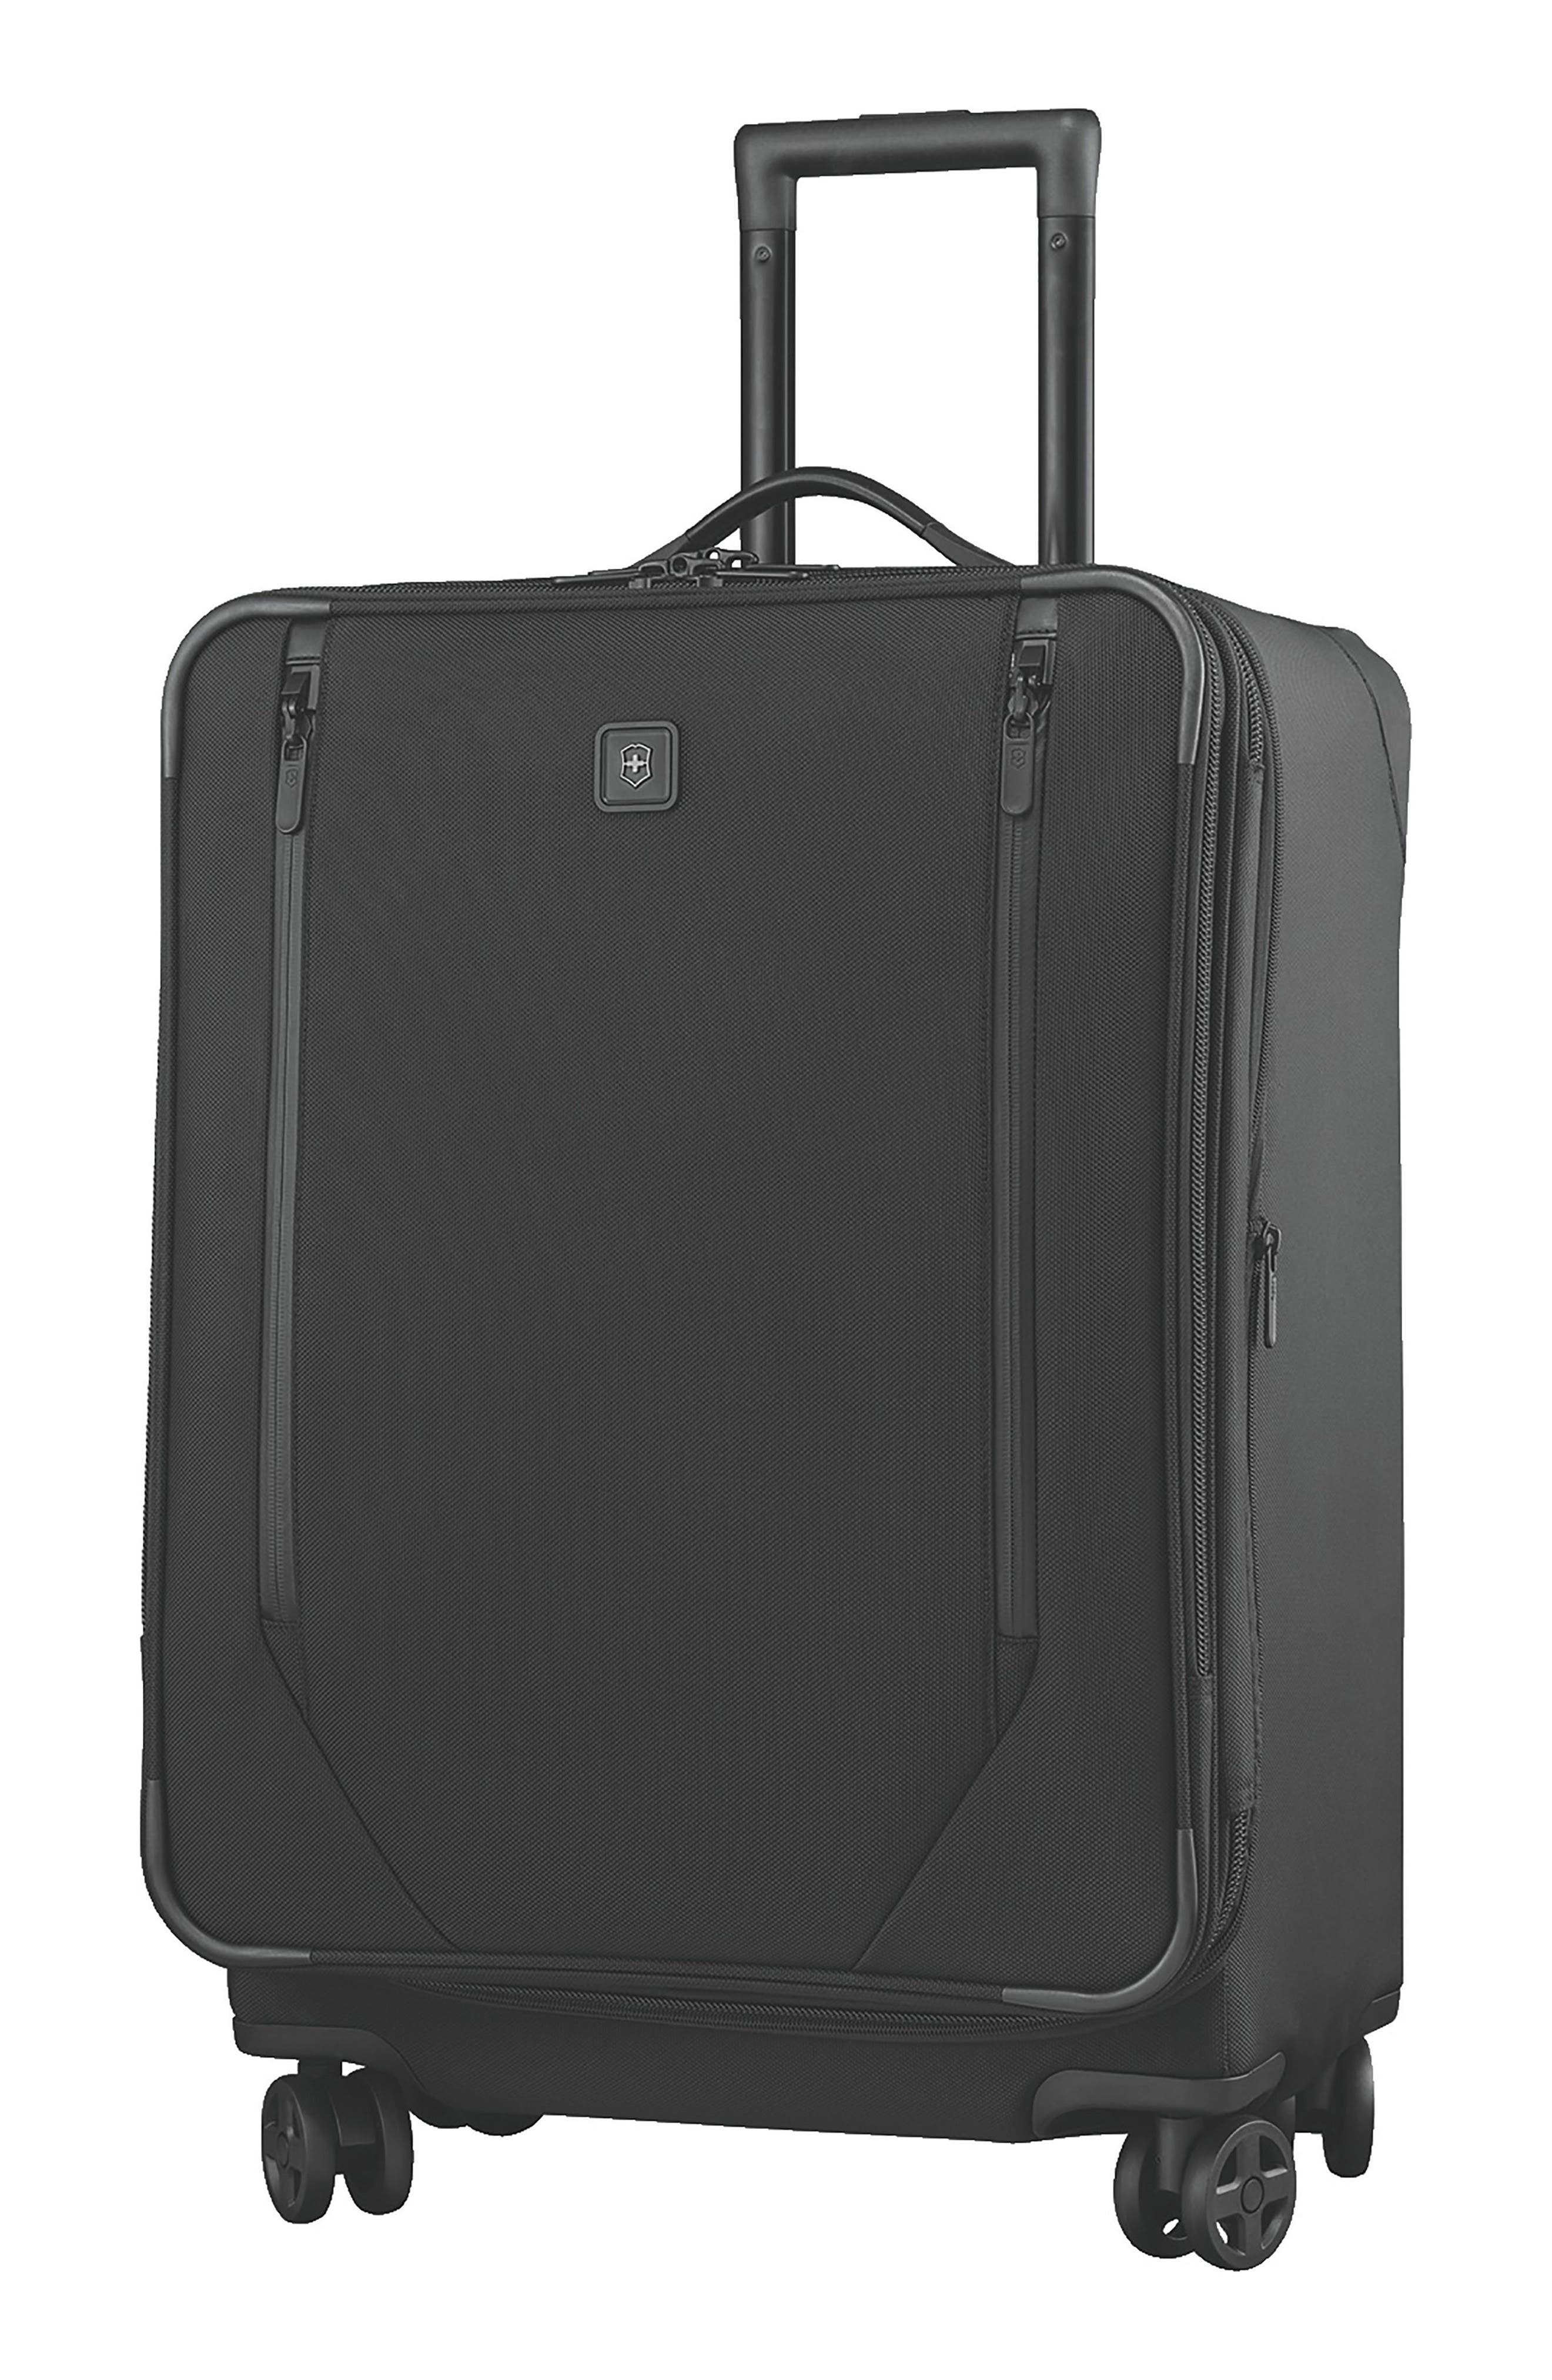 Victorinox Swiss Army® Lexicon 2.0 26 Inch Wheeled Suitcase